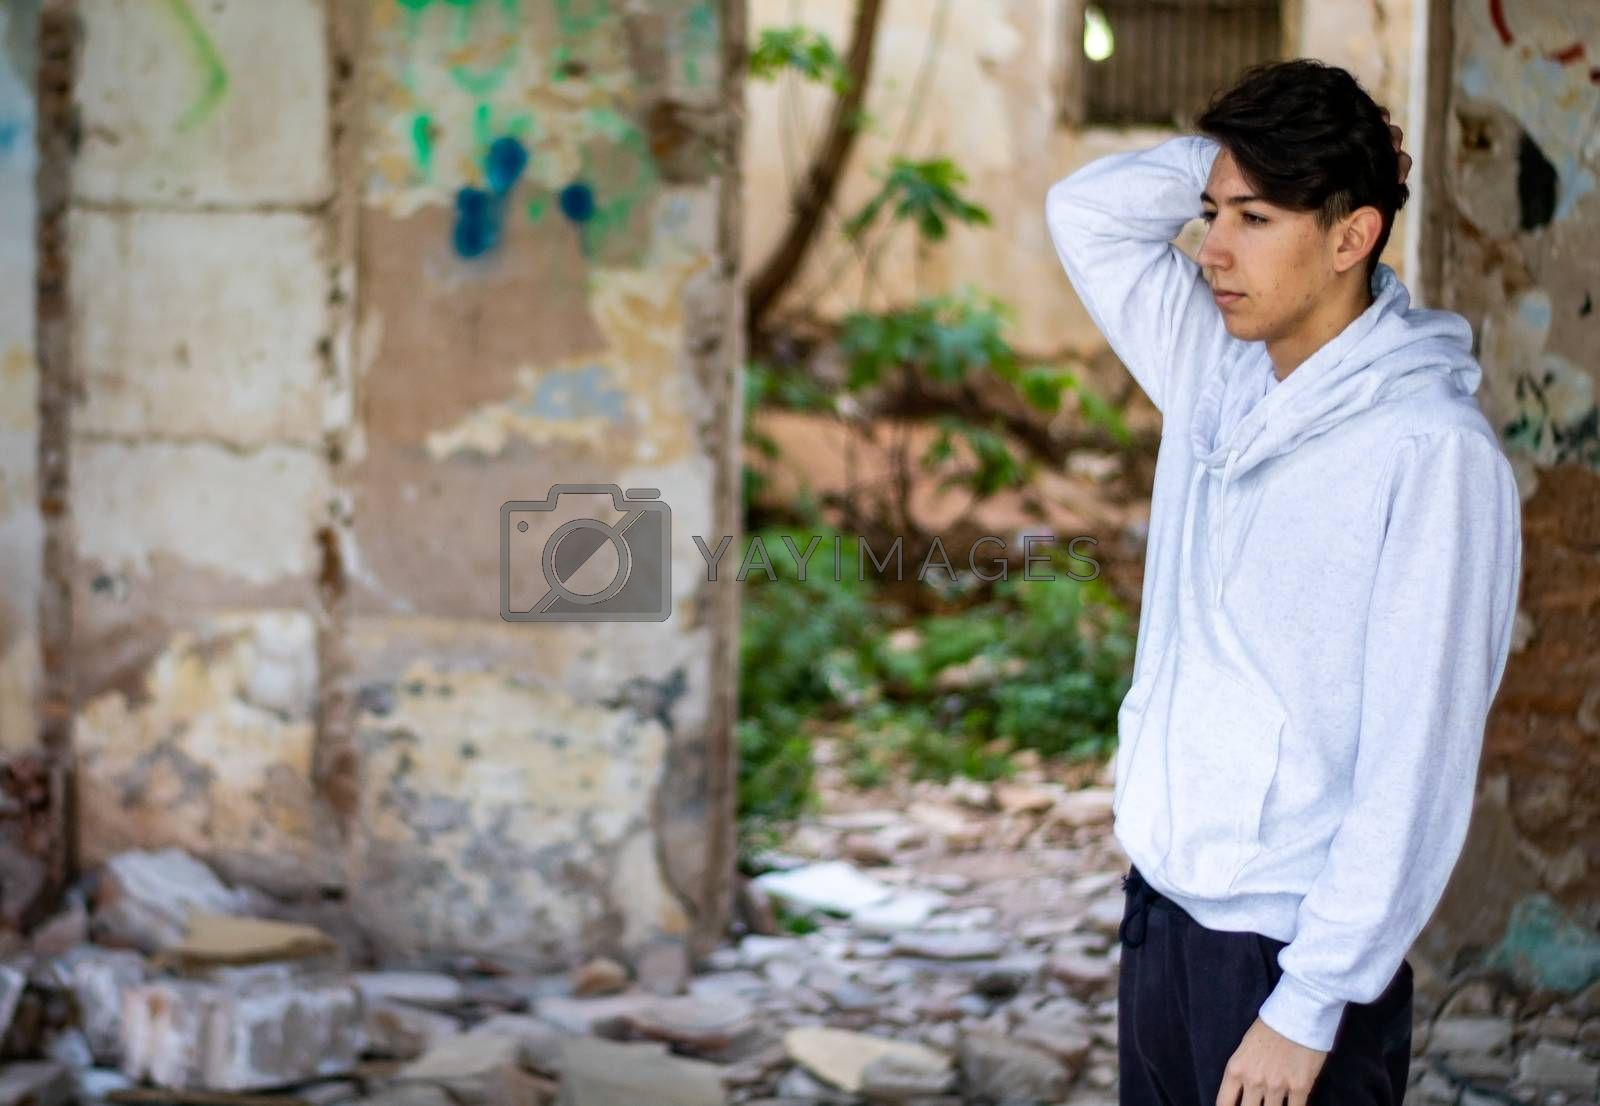 Young boy in an abandoned house by Barriolo82